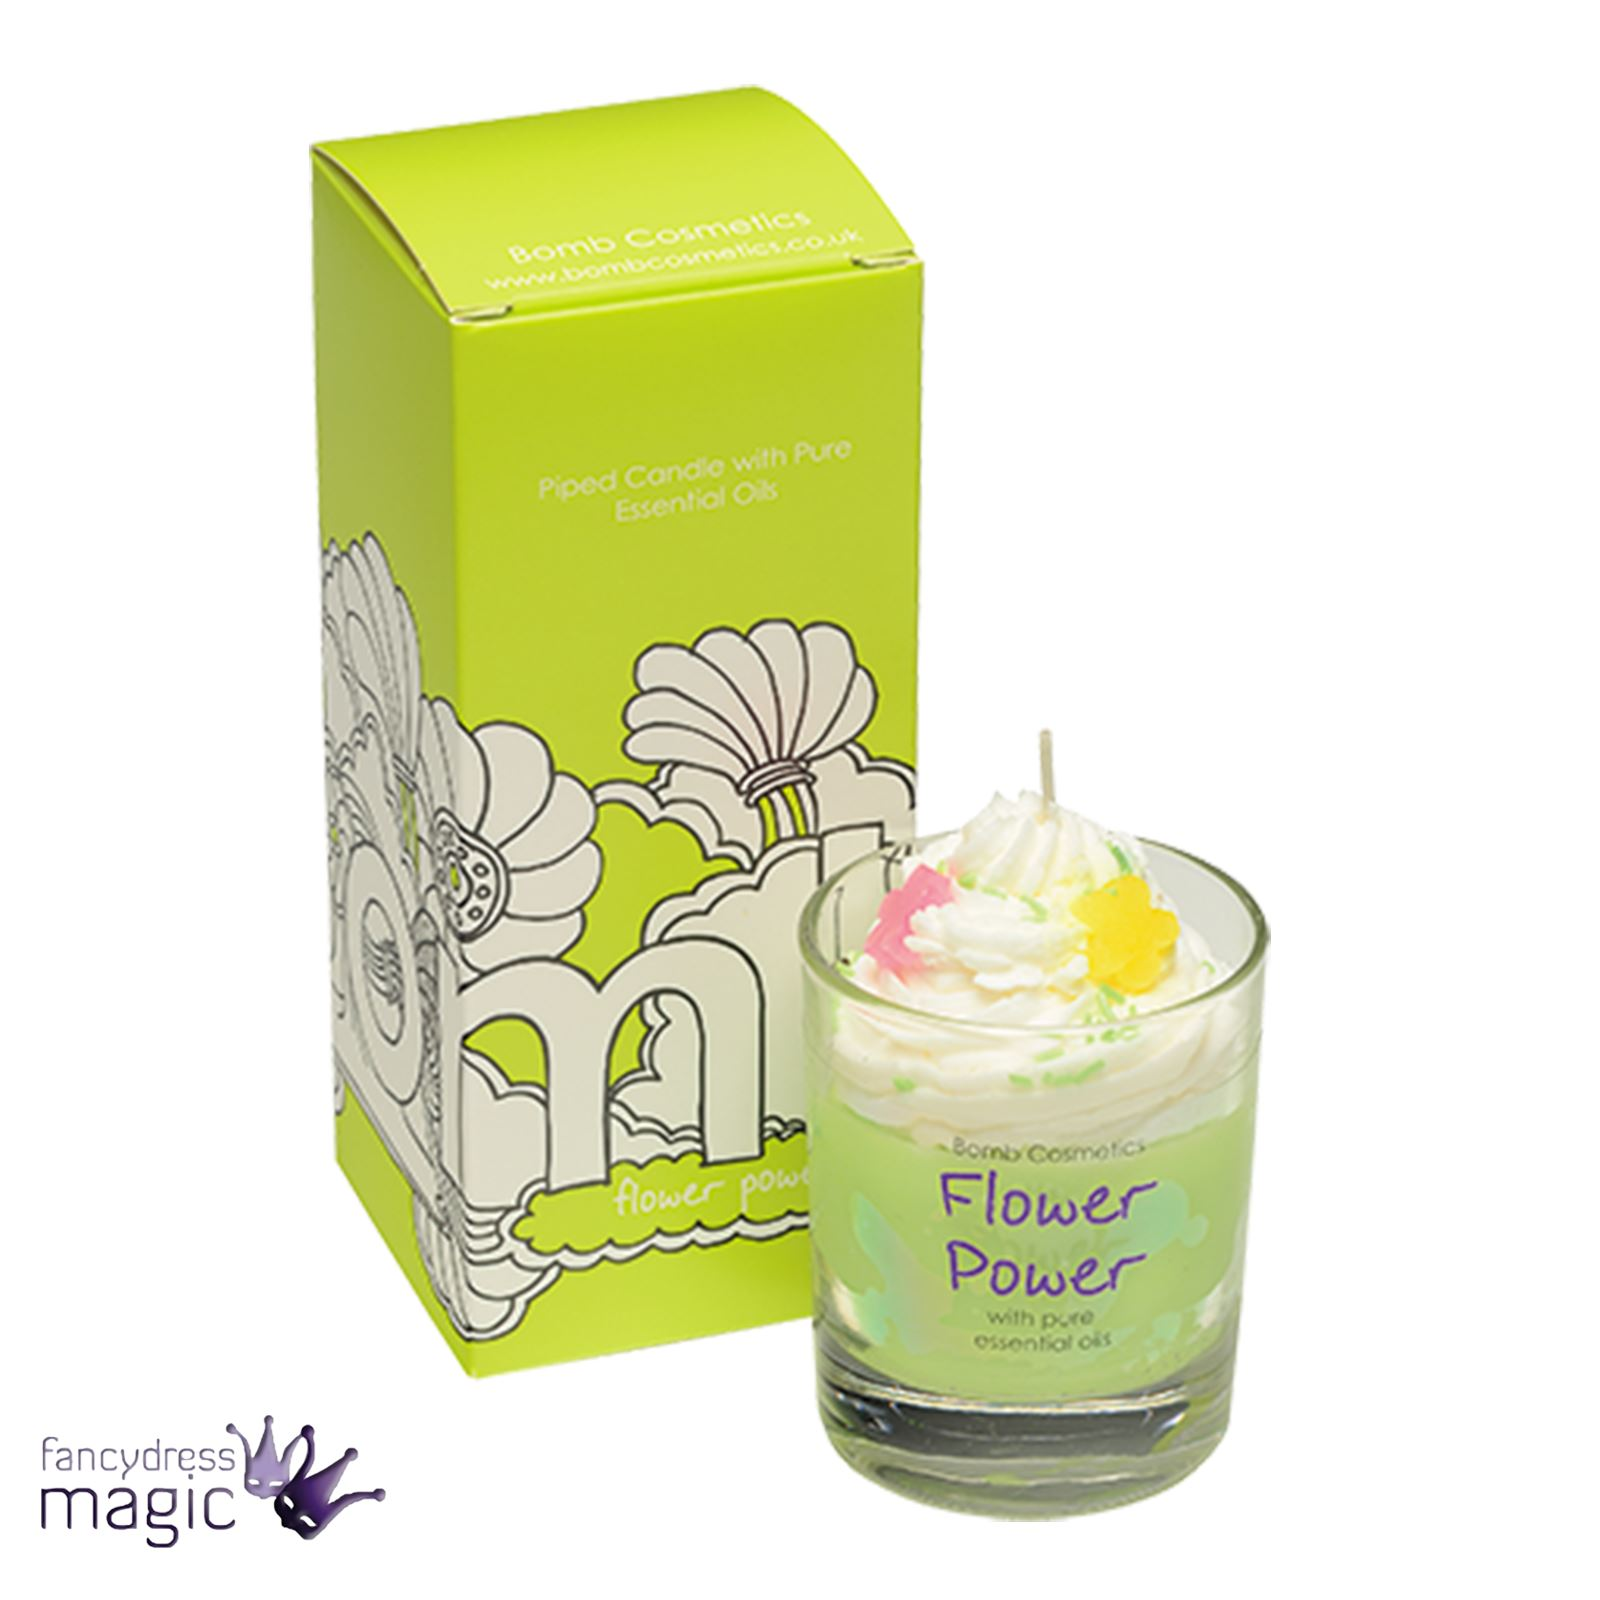 Bomb-Cosmetics-Handmade-Piped-Glass-Candle-Vegan-Pure-Essential-Oils-Boxed-Gift thumbnail 12